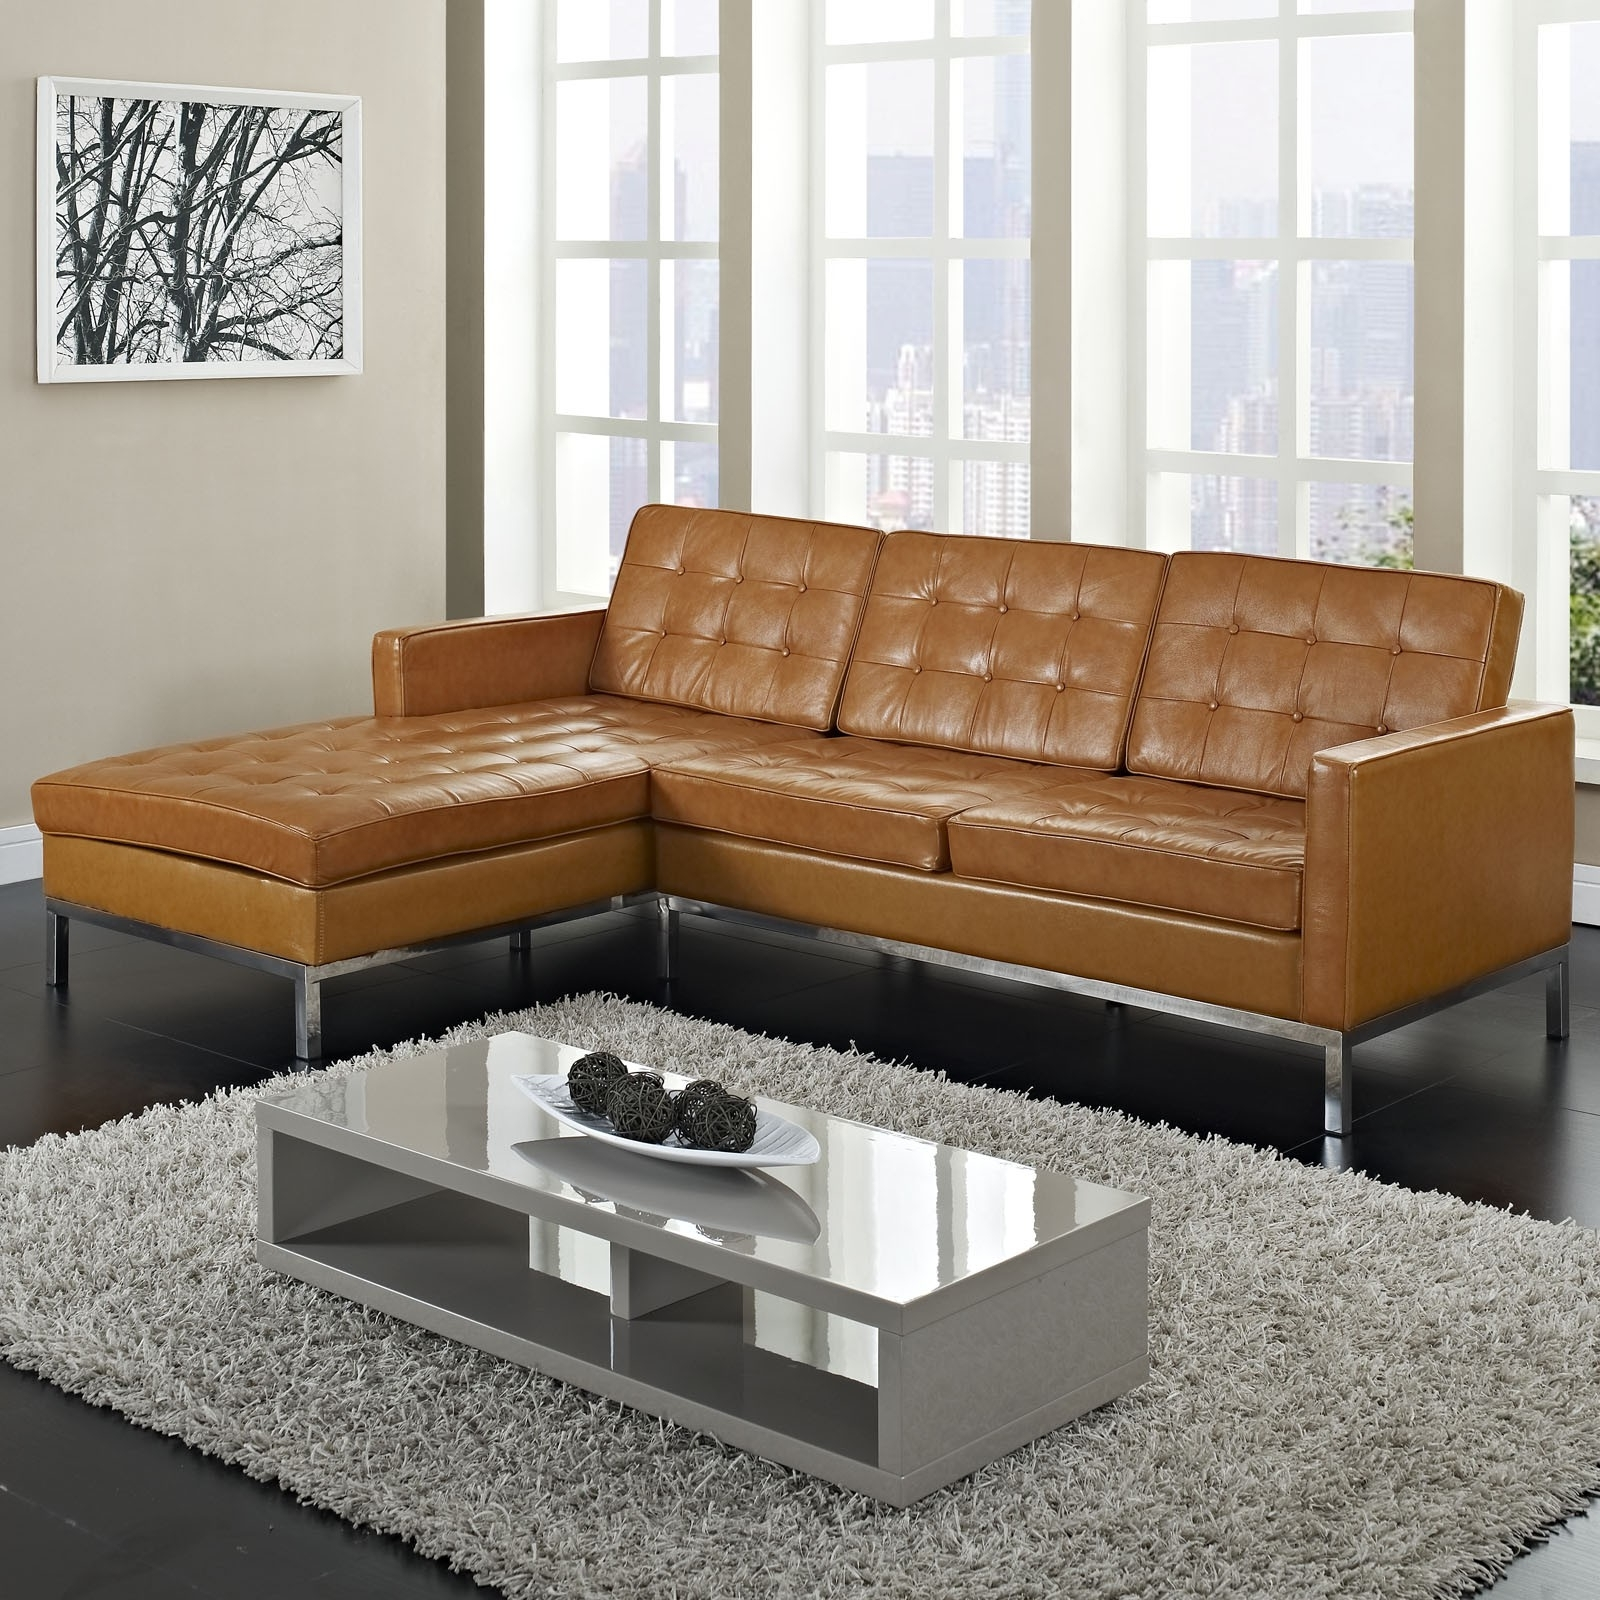 Newest Furniture, Maximizing Small Living Room Spaces With 3 Piece Brown For Light Tan Leather Sofas (View 7 of 15)